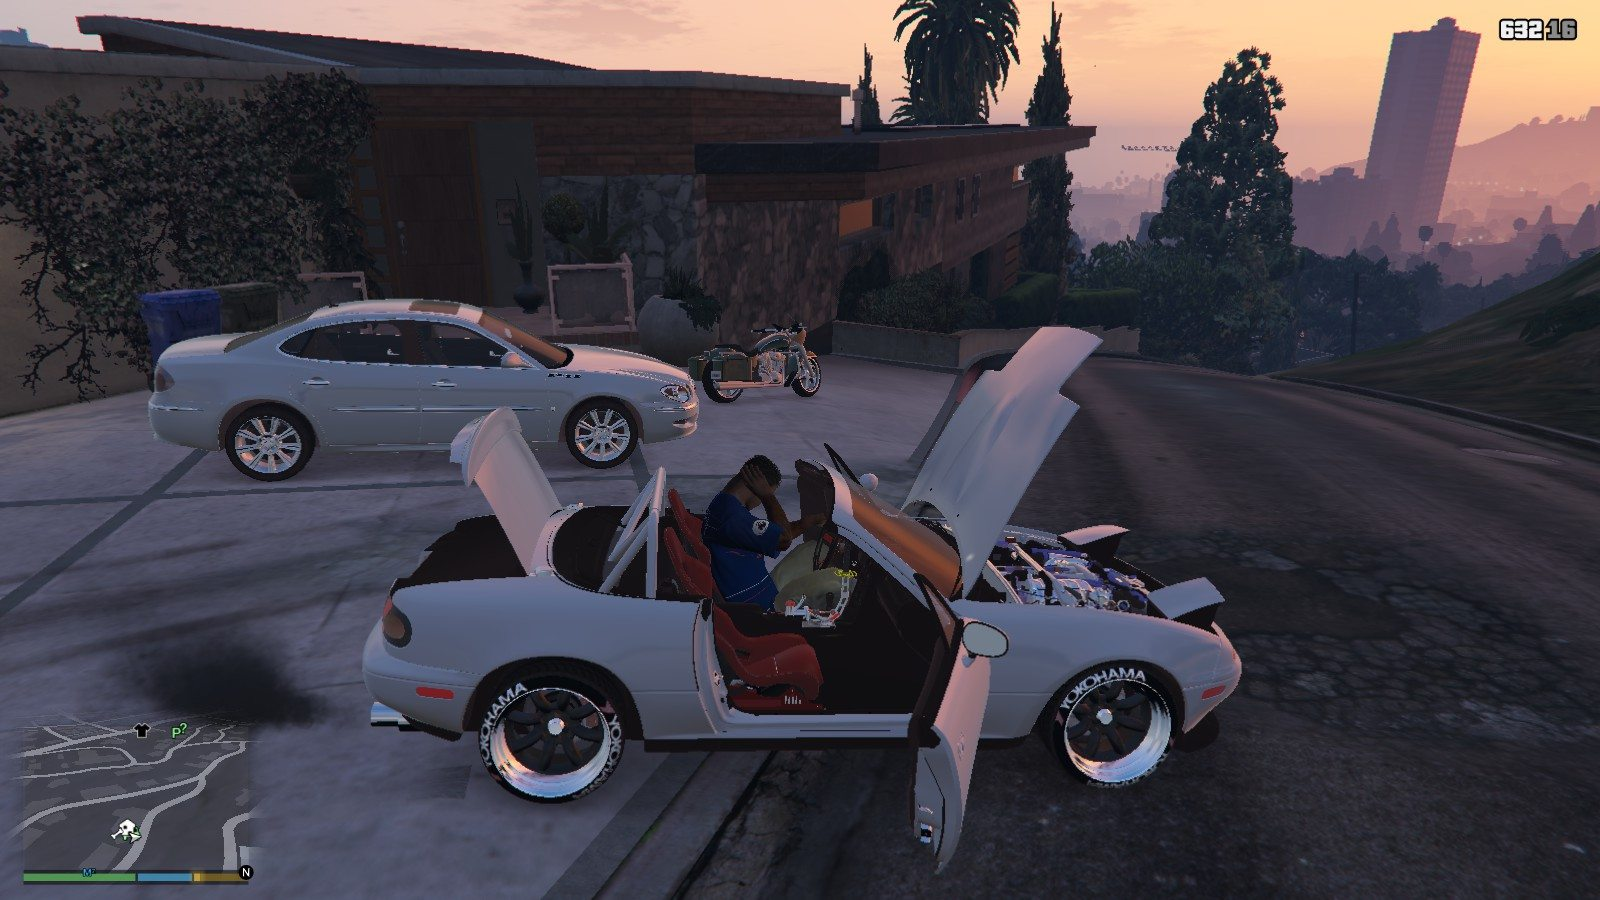 1994 MX5 MxDevil GTA5 Mods (2)